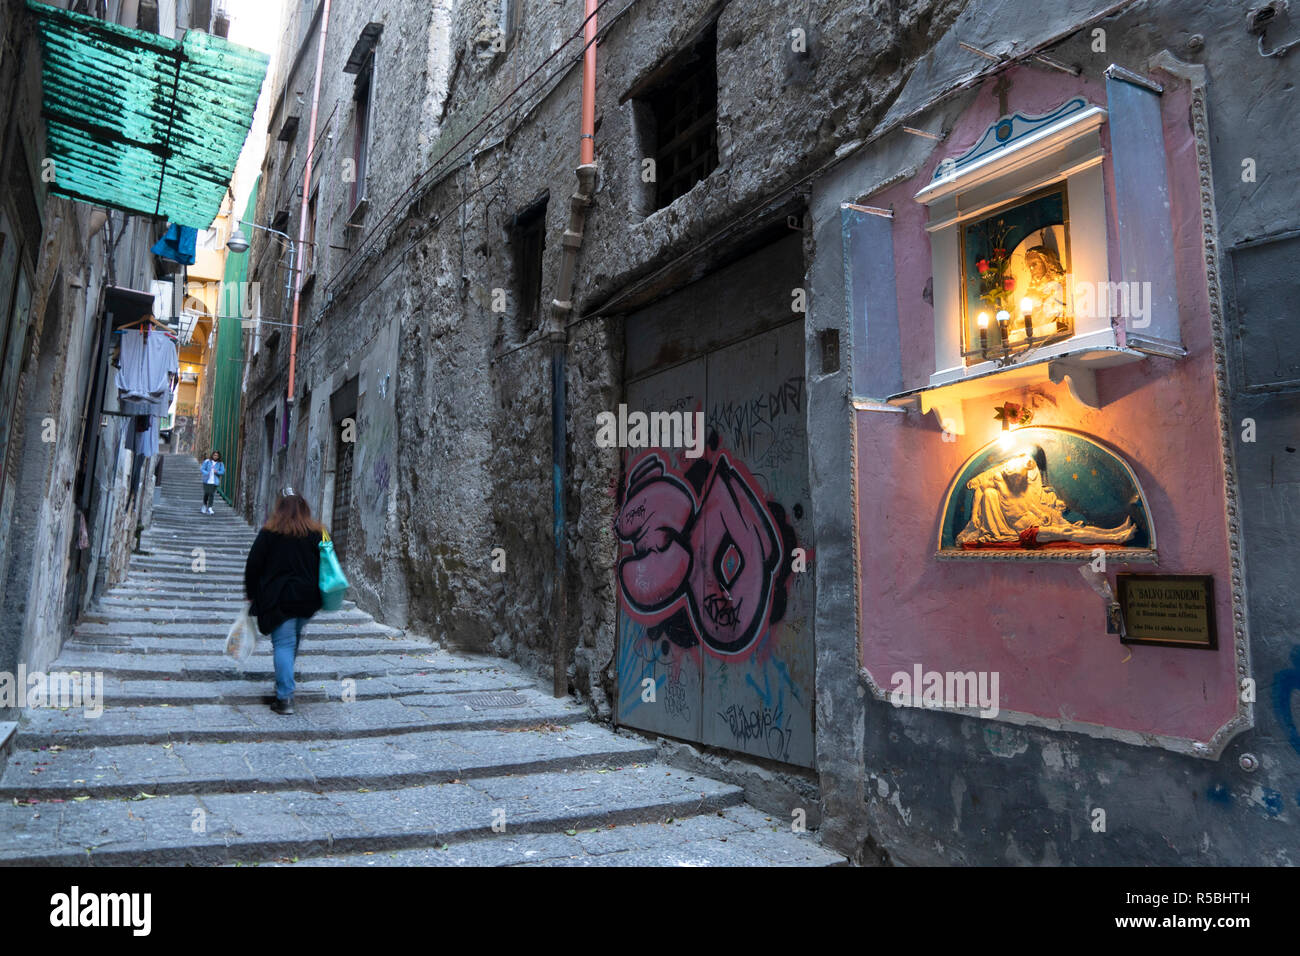 A typical family shrine found in many streets in Naples like this one in the Pendino Santa Barbara, leading up to the Centro Storico, the  historical  - Stock Image